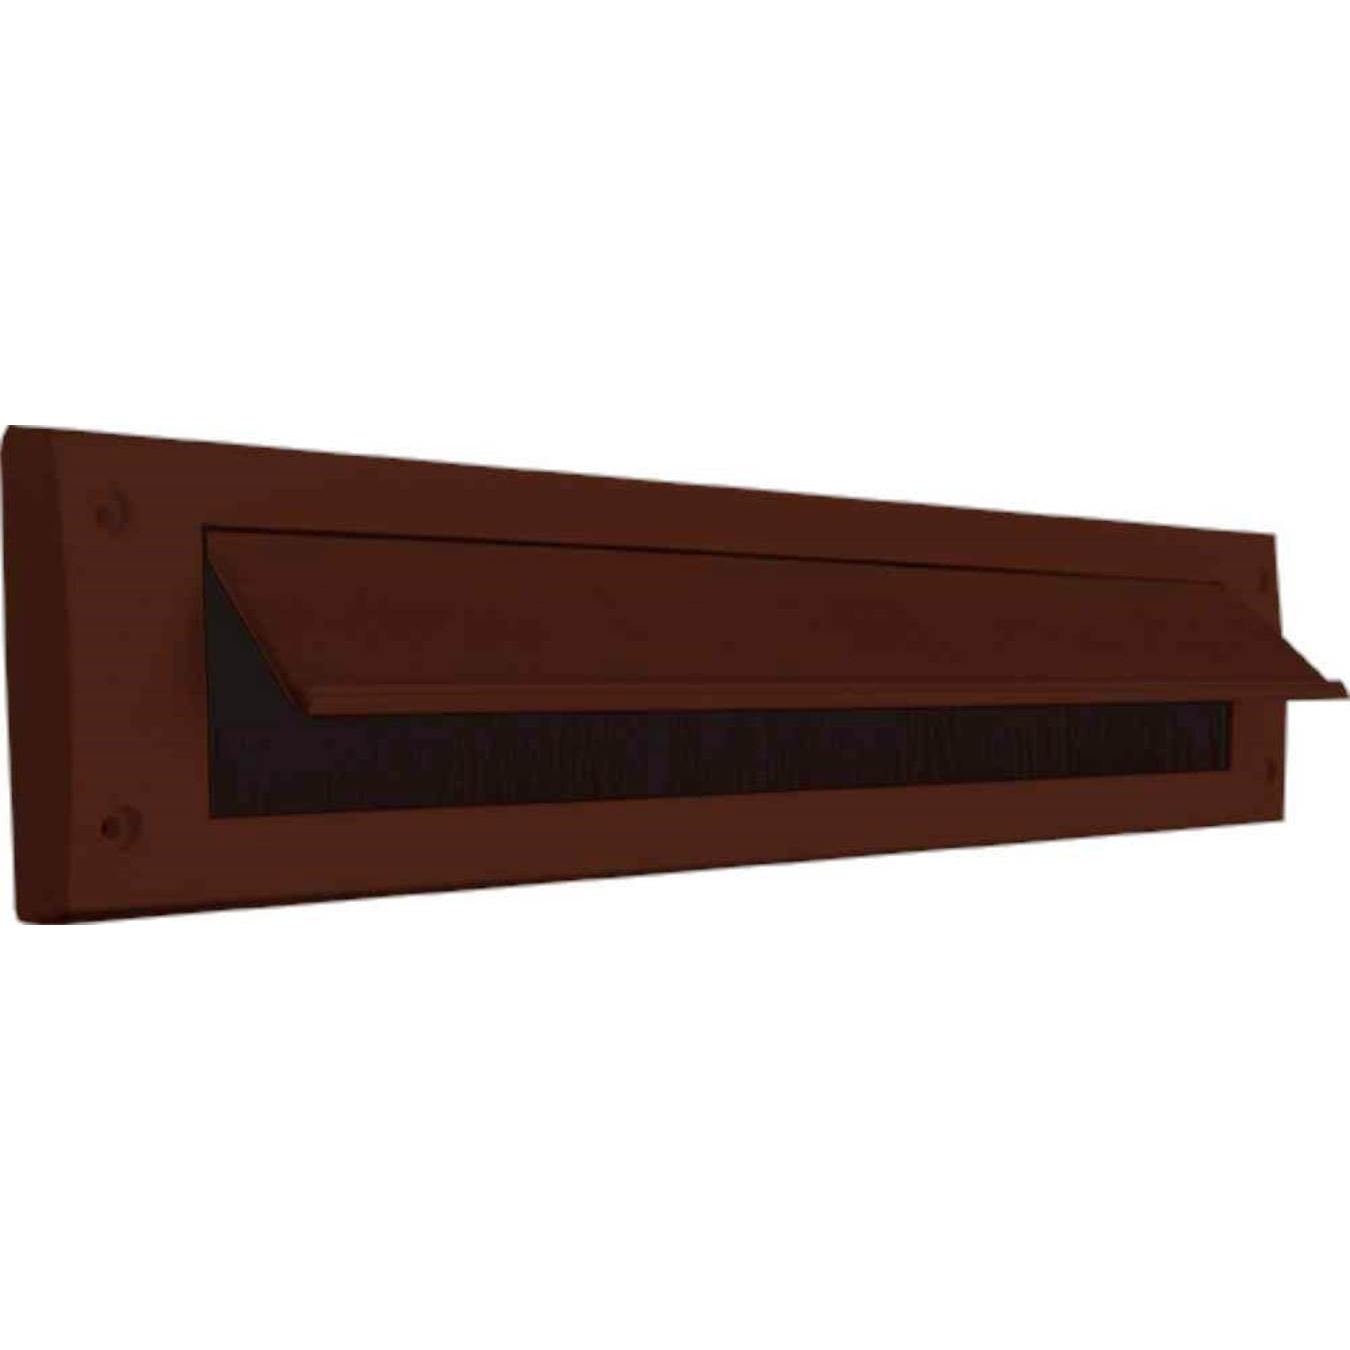 LETTER BOX DRAUGHT EXCLUDER WITH FLAP BROWN QTY:1